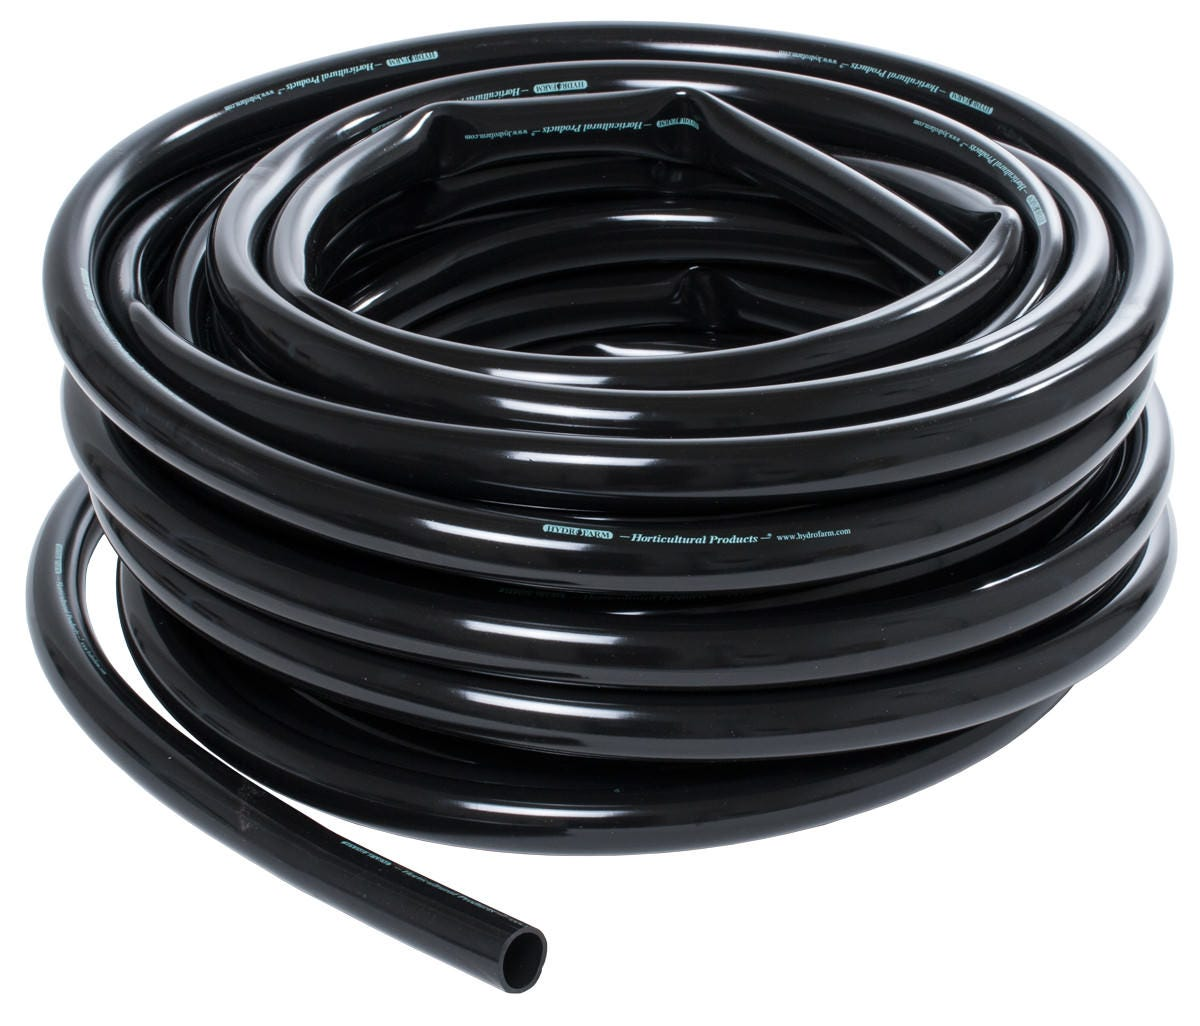 Photograph of Hydro Flow Vinyl Tubing Black 3/16 in ID - 1/4 in OD 100 ft Roll